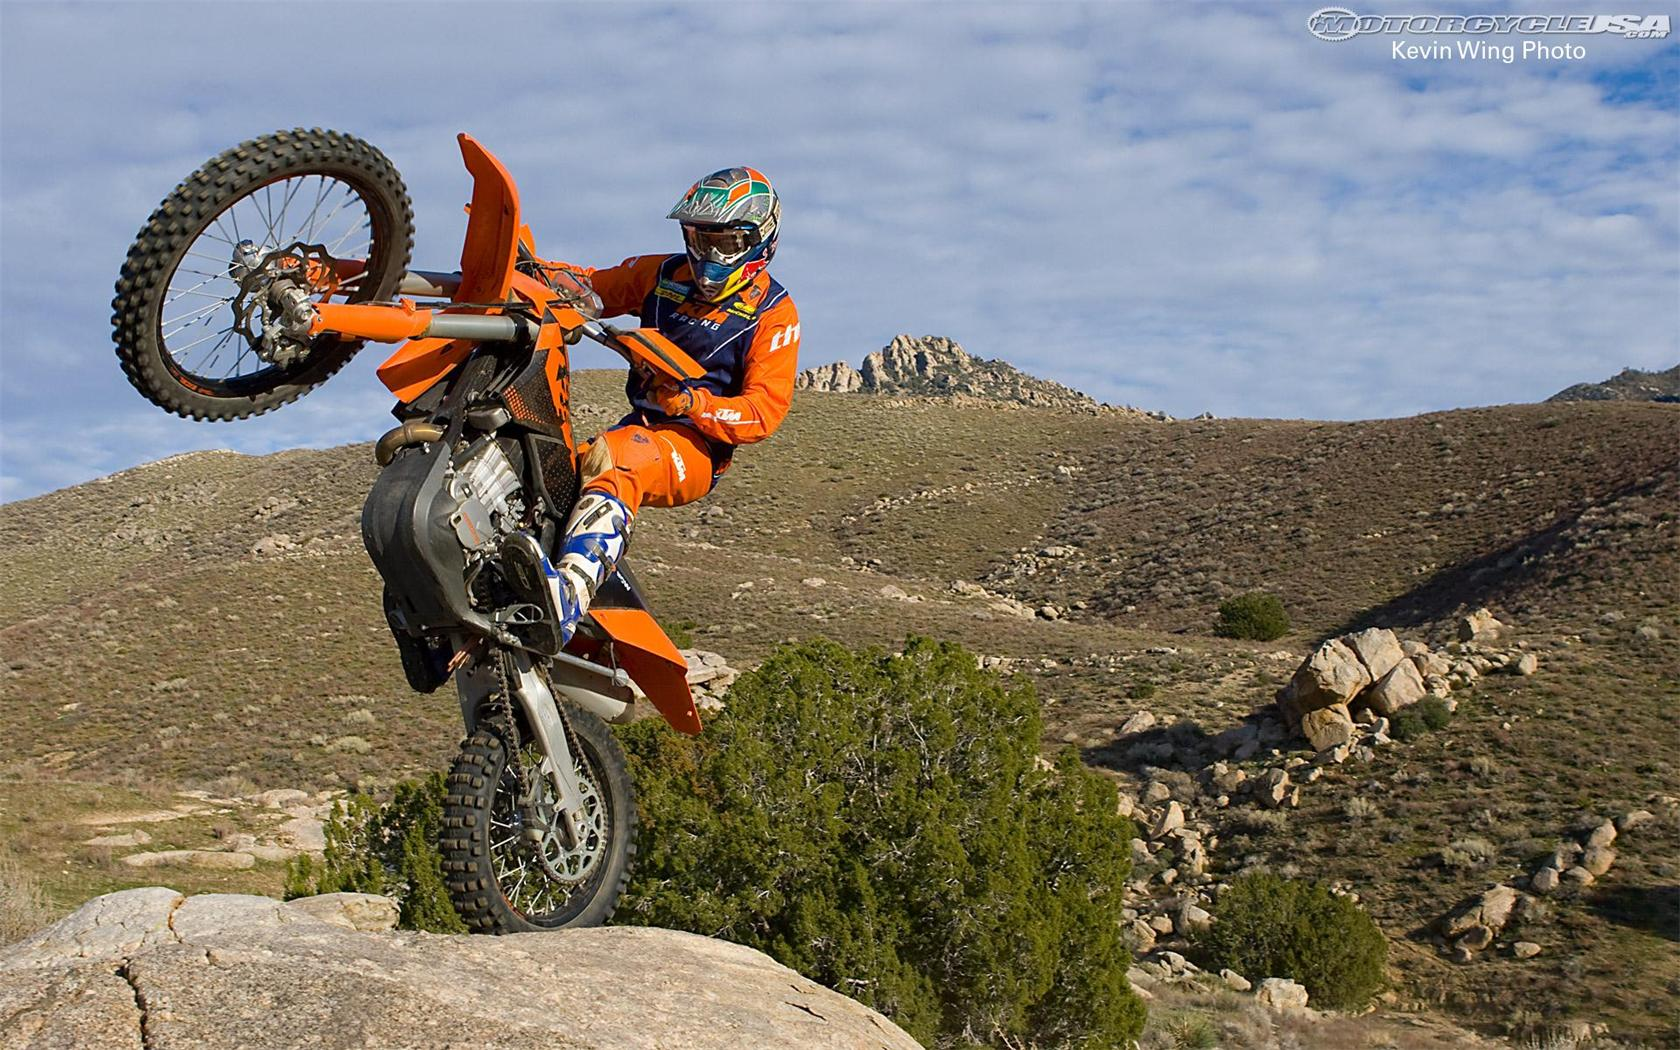 10 New Ktm Dirt Bike Wallpapers Full Hd 1080p For Pc: Dirt Bike Wallpaper HD